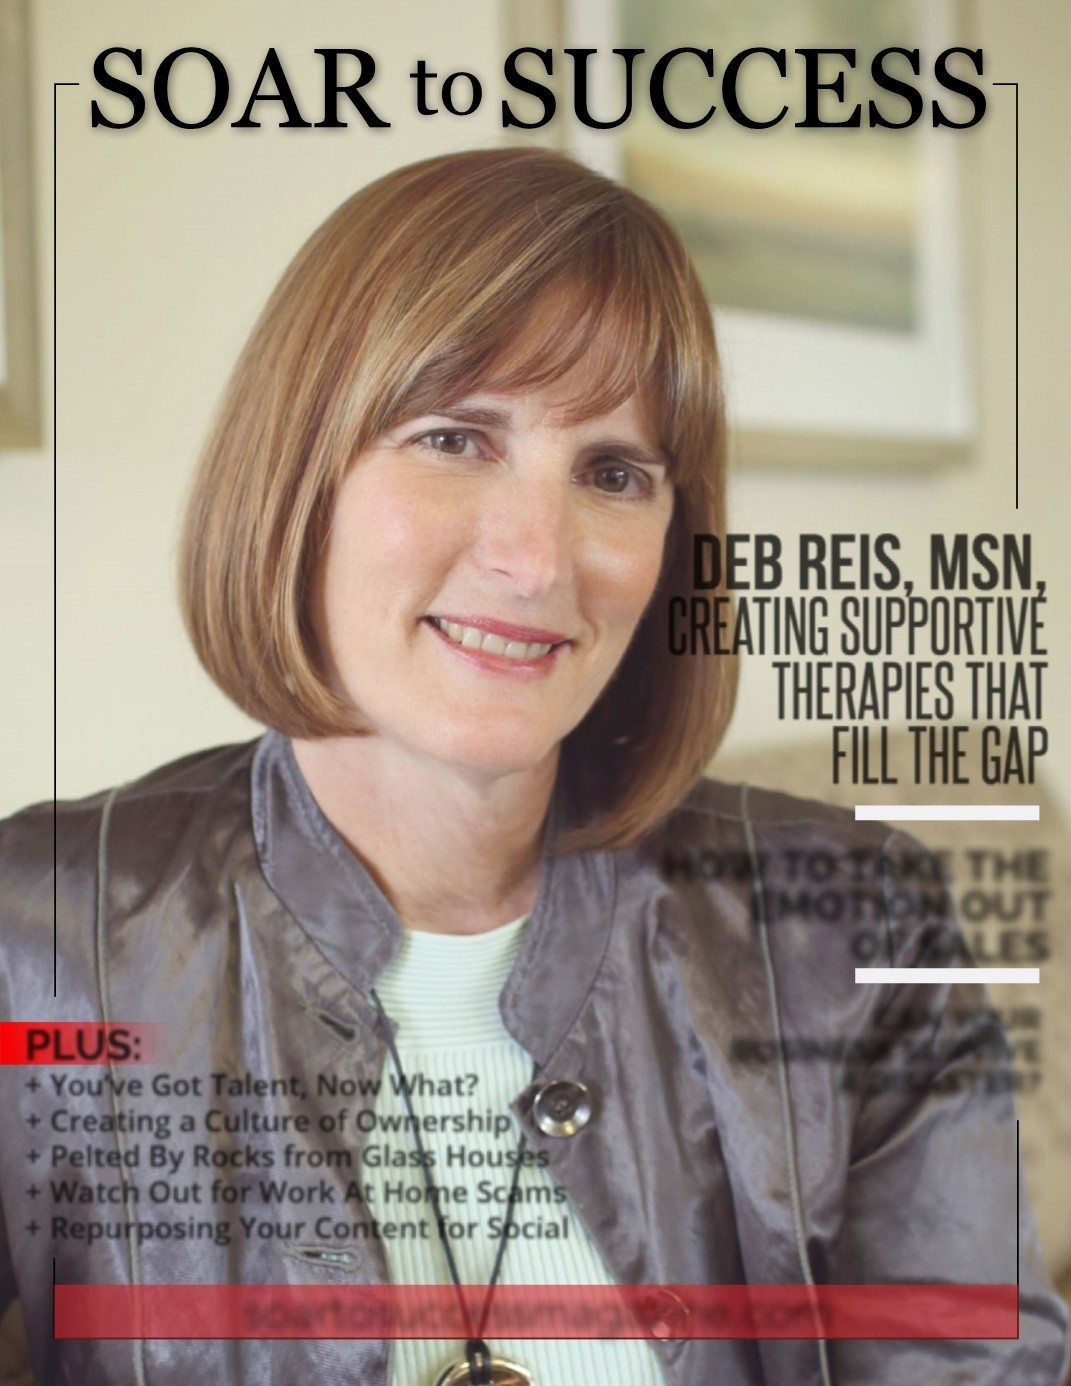 Debra Reis Soar to Success Creating Supportive Therapies that fill the gap